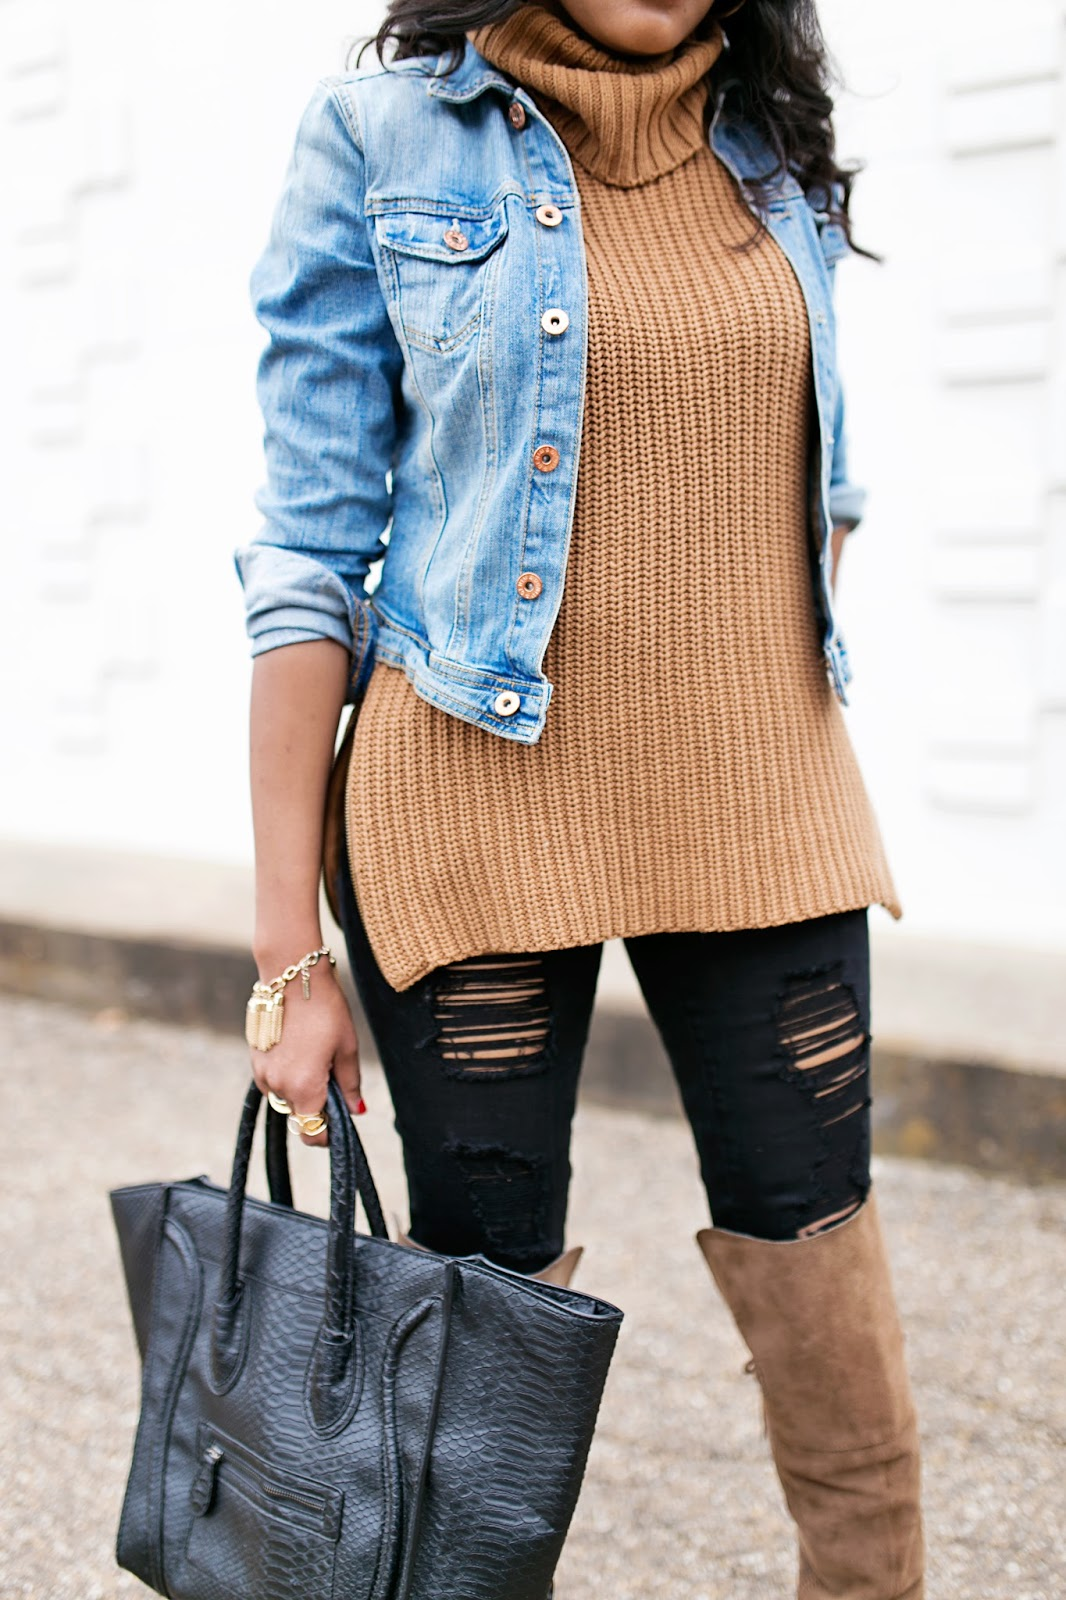 women fashion- denim jacket outfit- brown suede over the knee boots- sam edelman tatum otk boot- zippered turtleneck- black ripped jeans- karen walker number one sunglasses- NARS Cruella lipstick- black girl blogger- fashion blogger- dallas blogger- casual outfit ideas- fall outfit idea